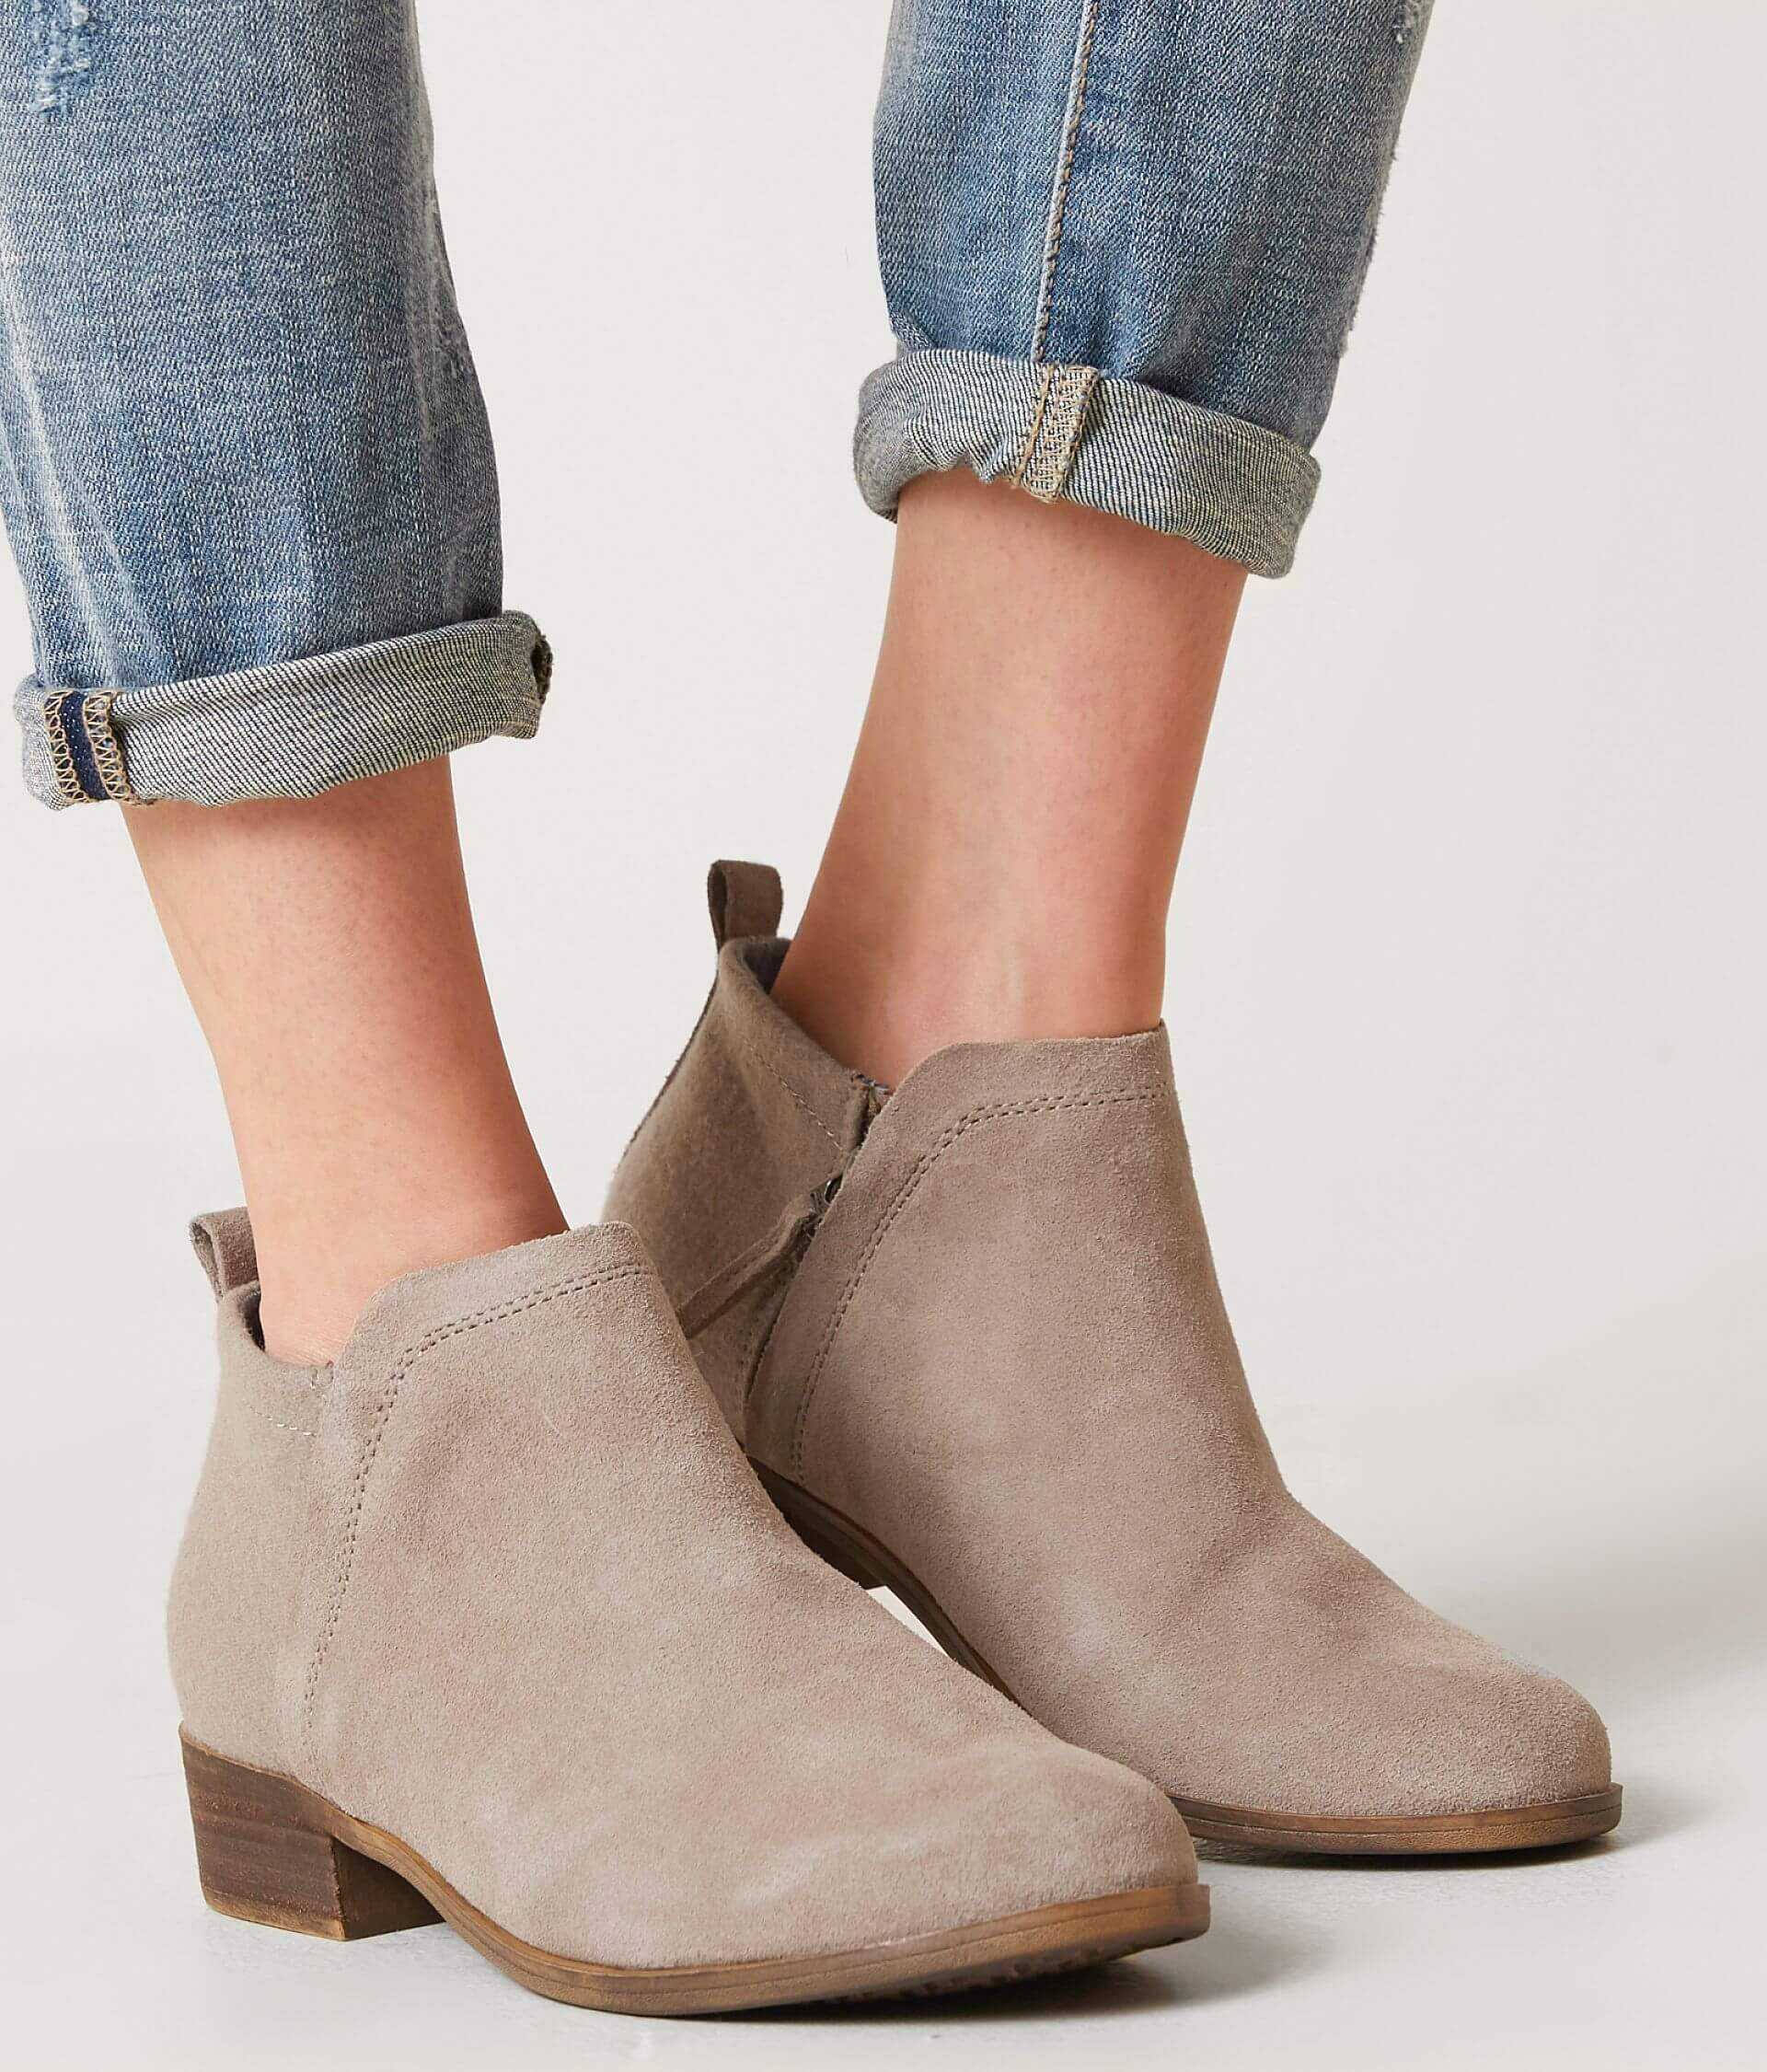 c819f7e43d5 TOMS Deia Leather Ankle Boot - Women's Shoes in Desert Taupe Suede ...